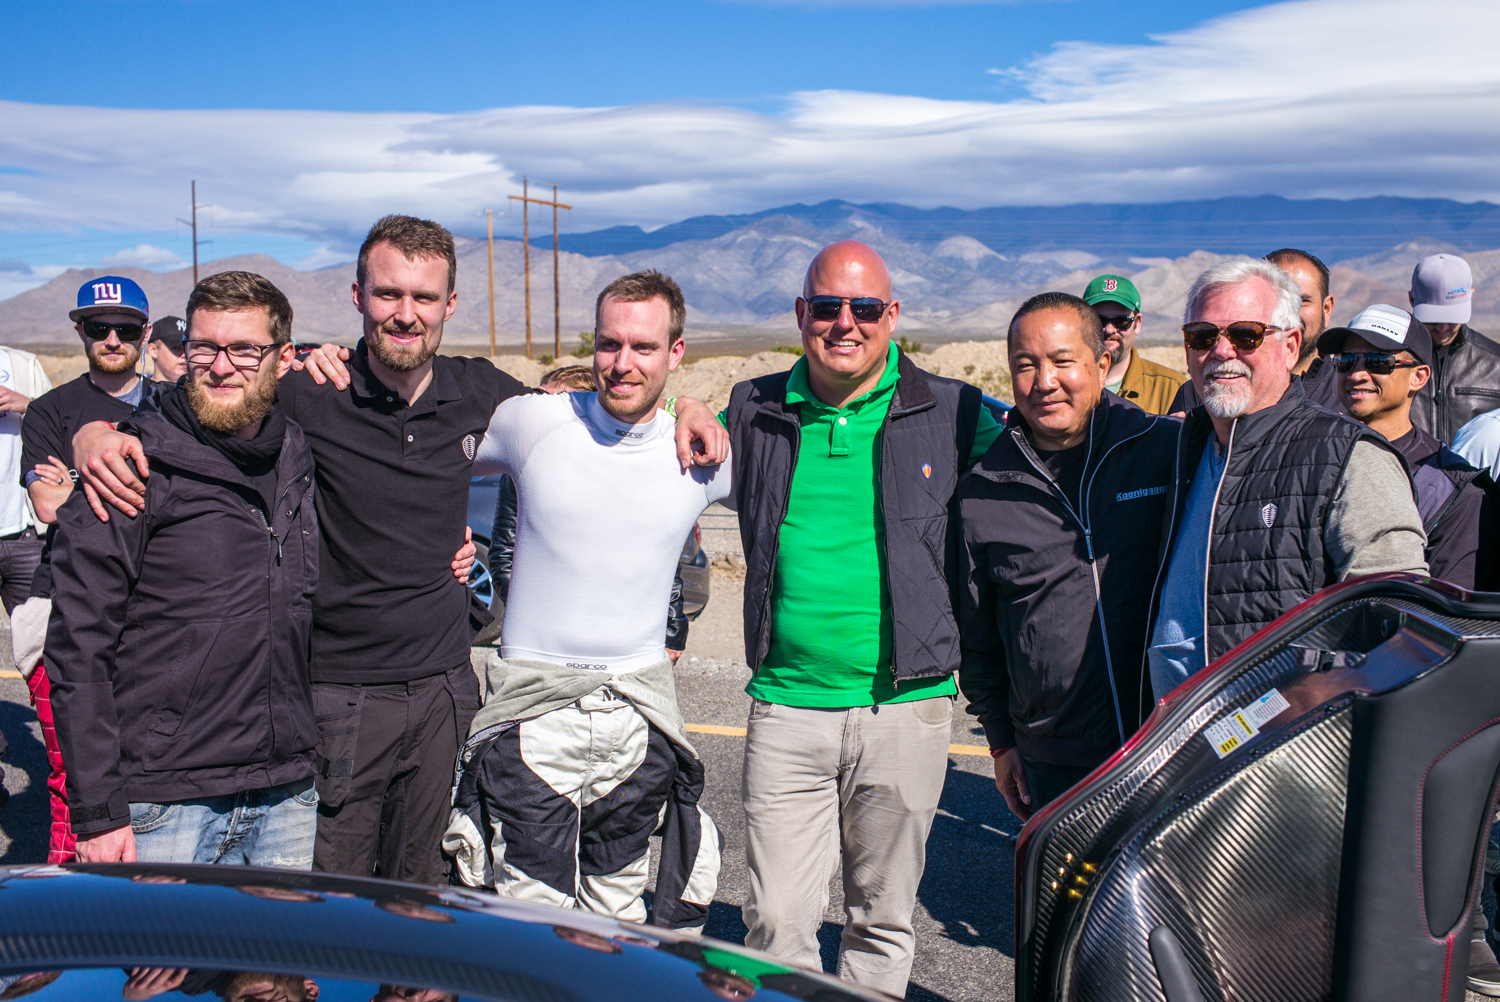 Koenigsegg team after the successful run